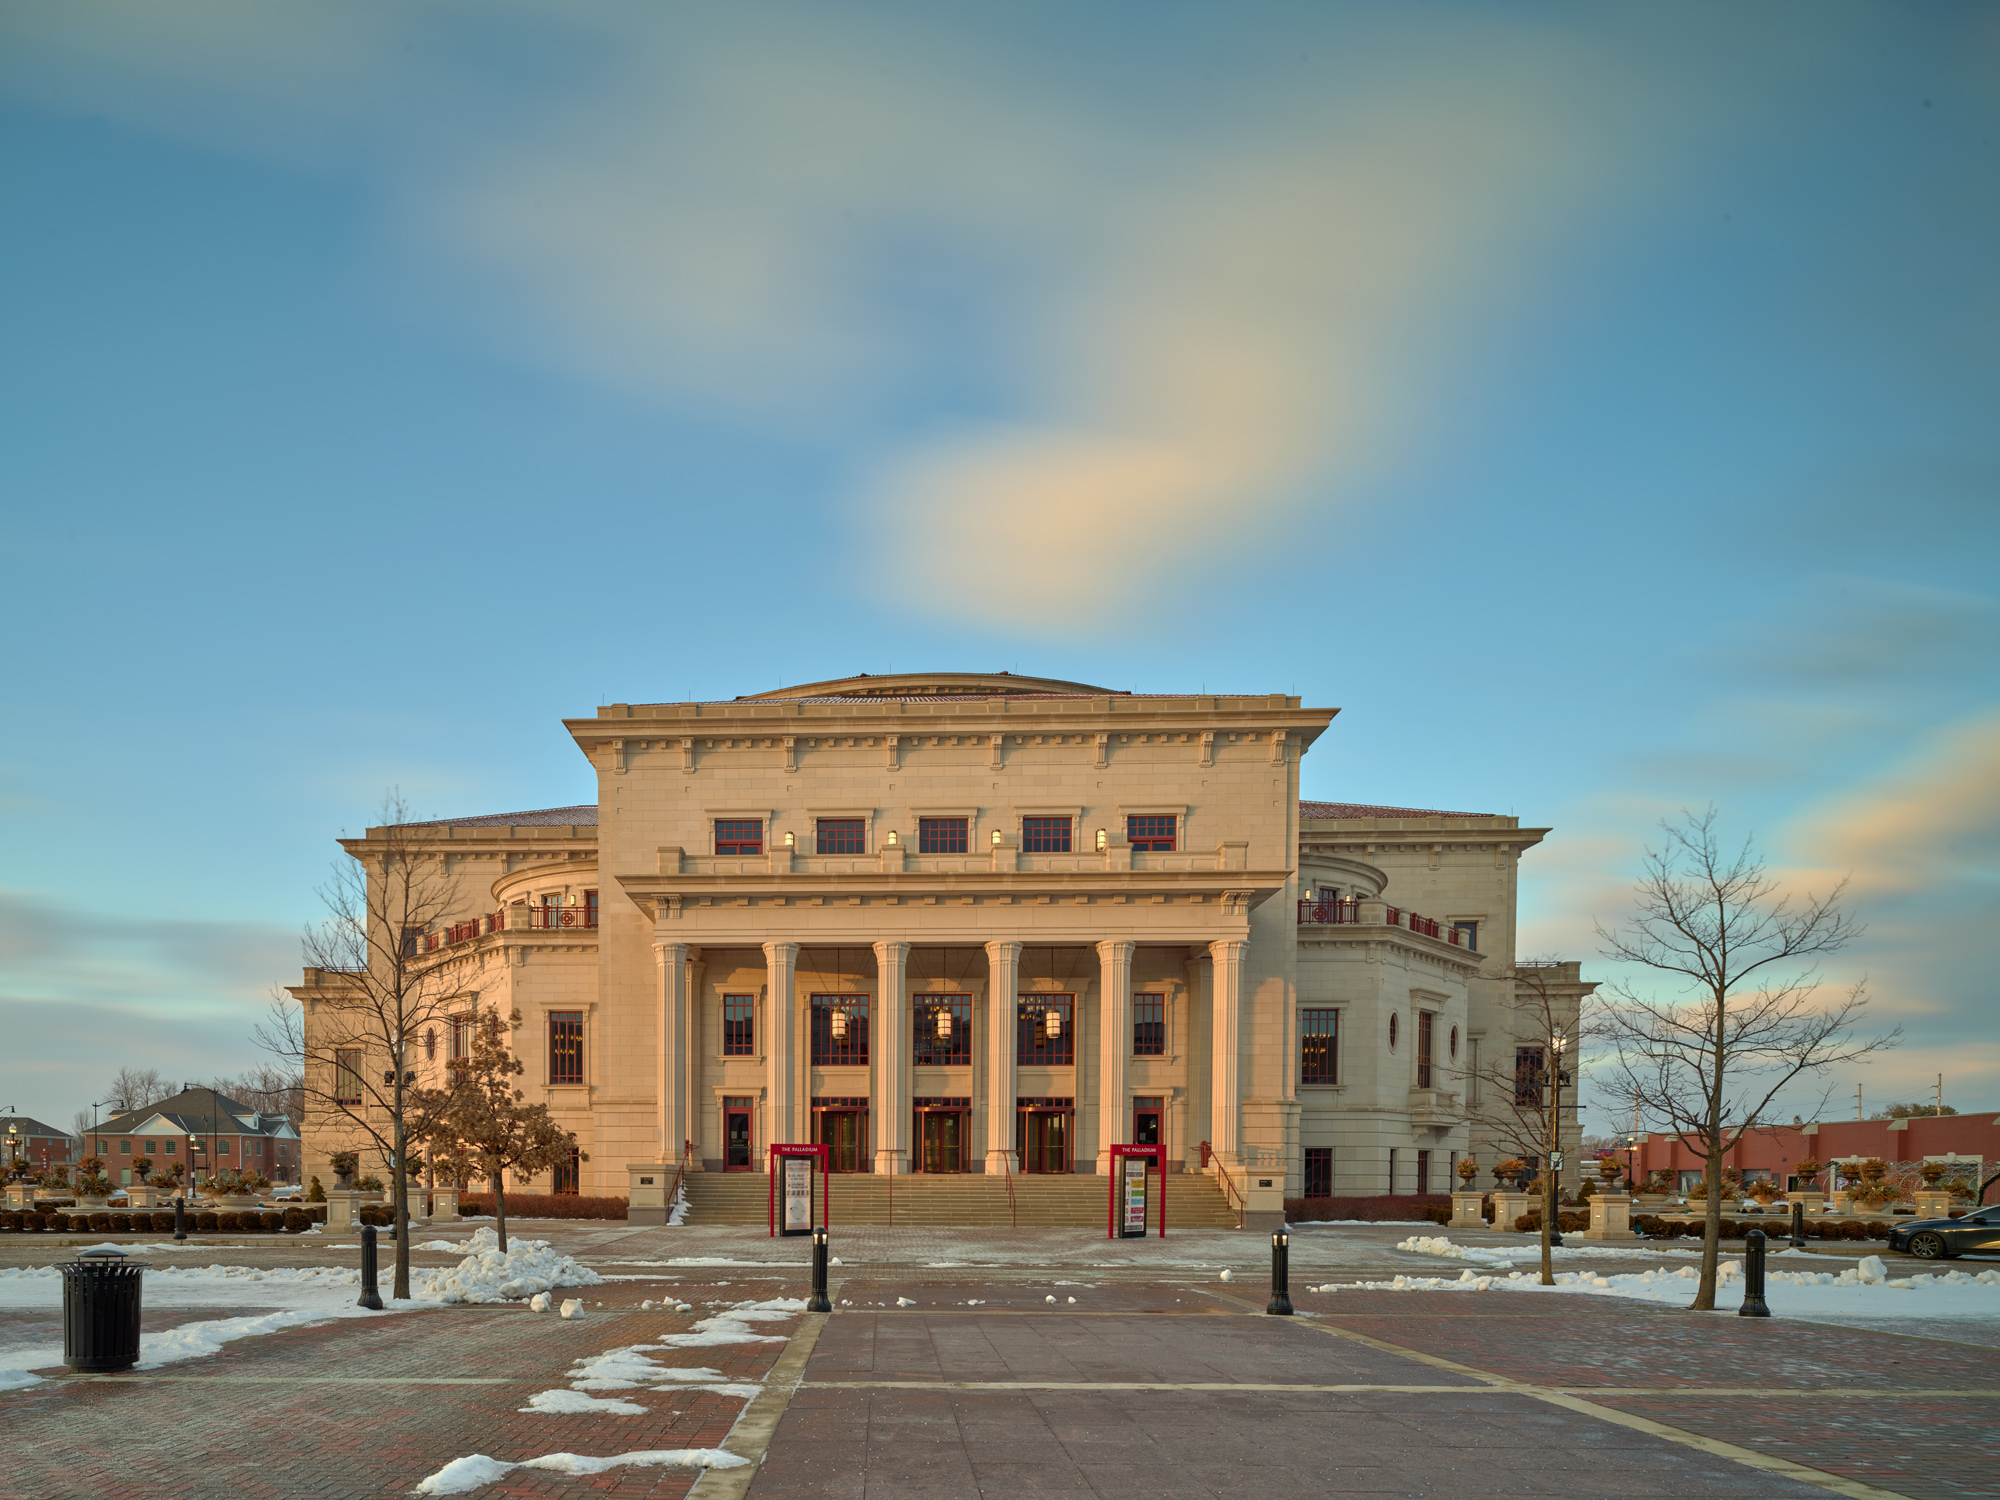 The Carmel Performing Arts Center at sunset